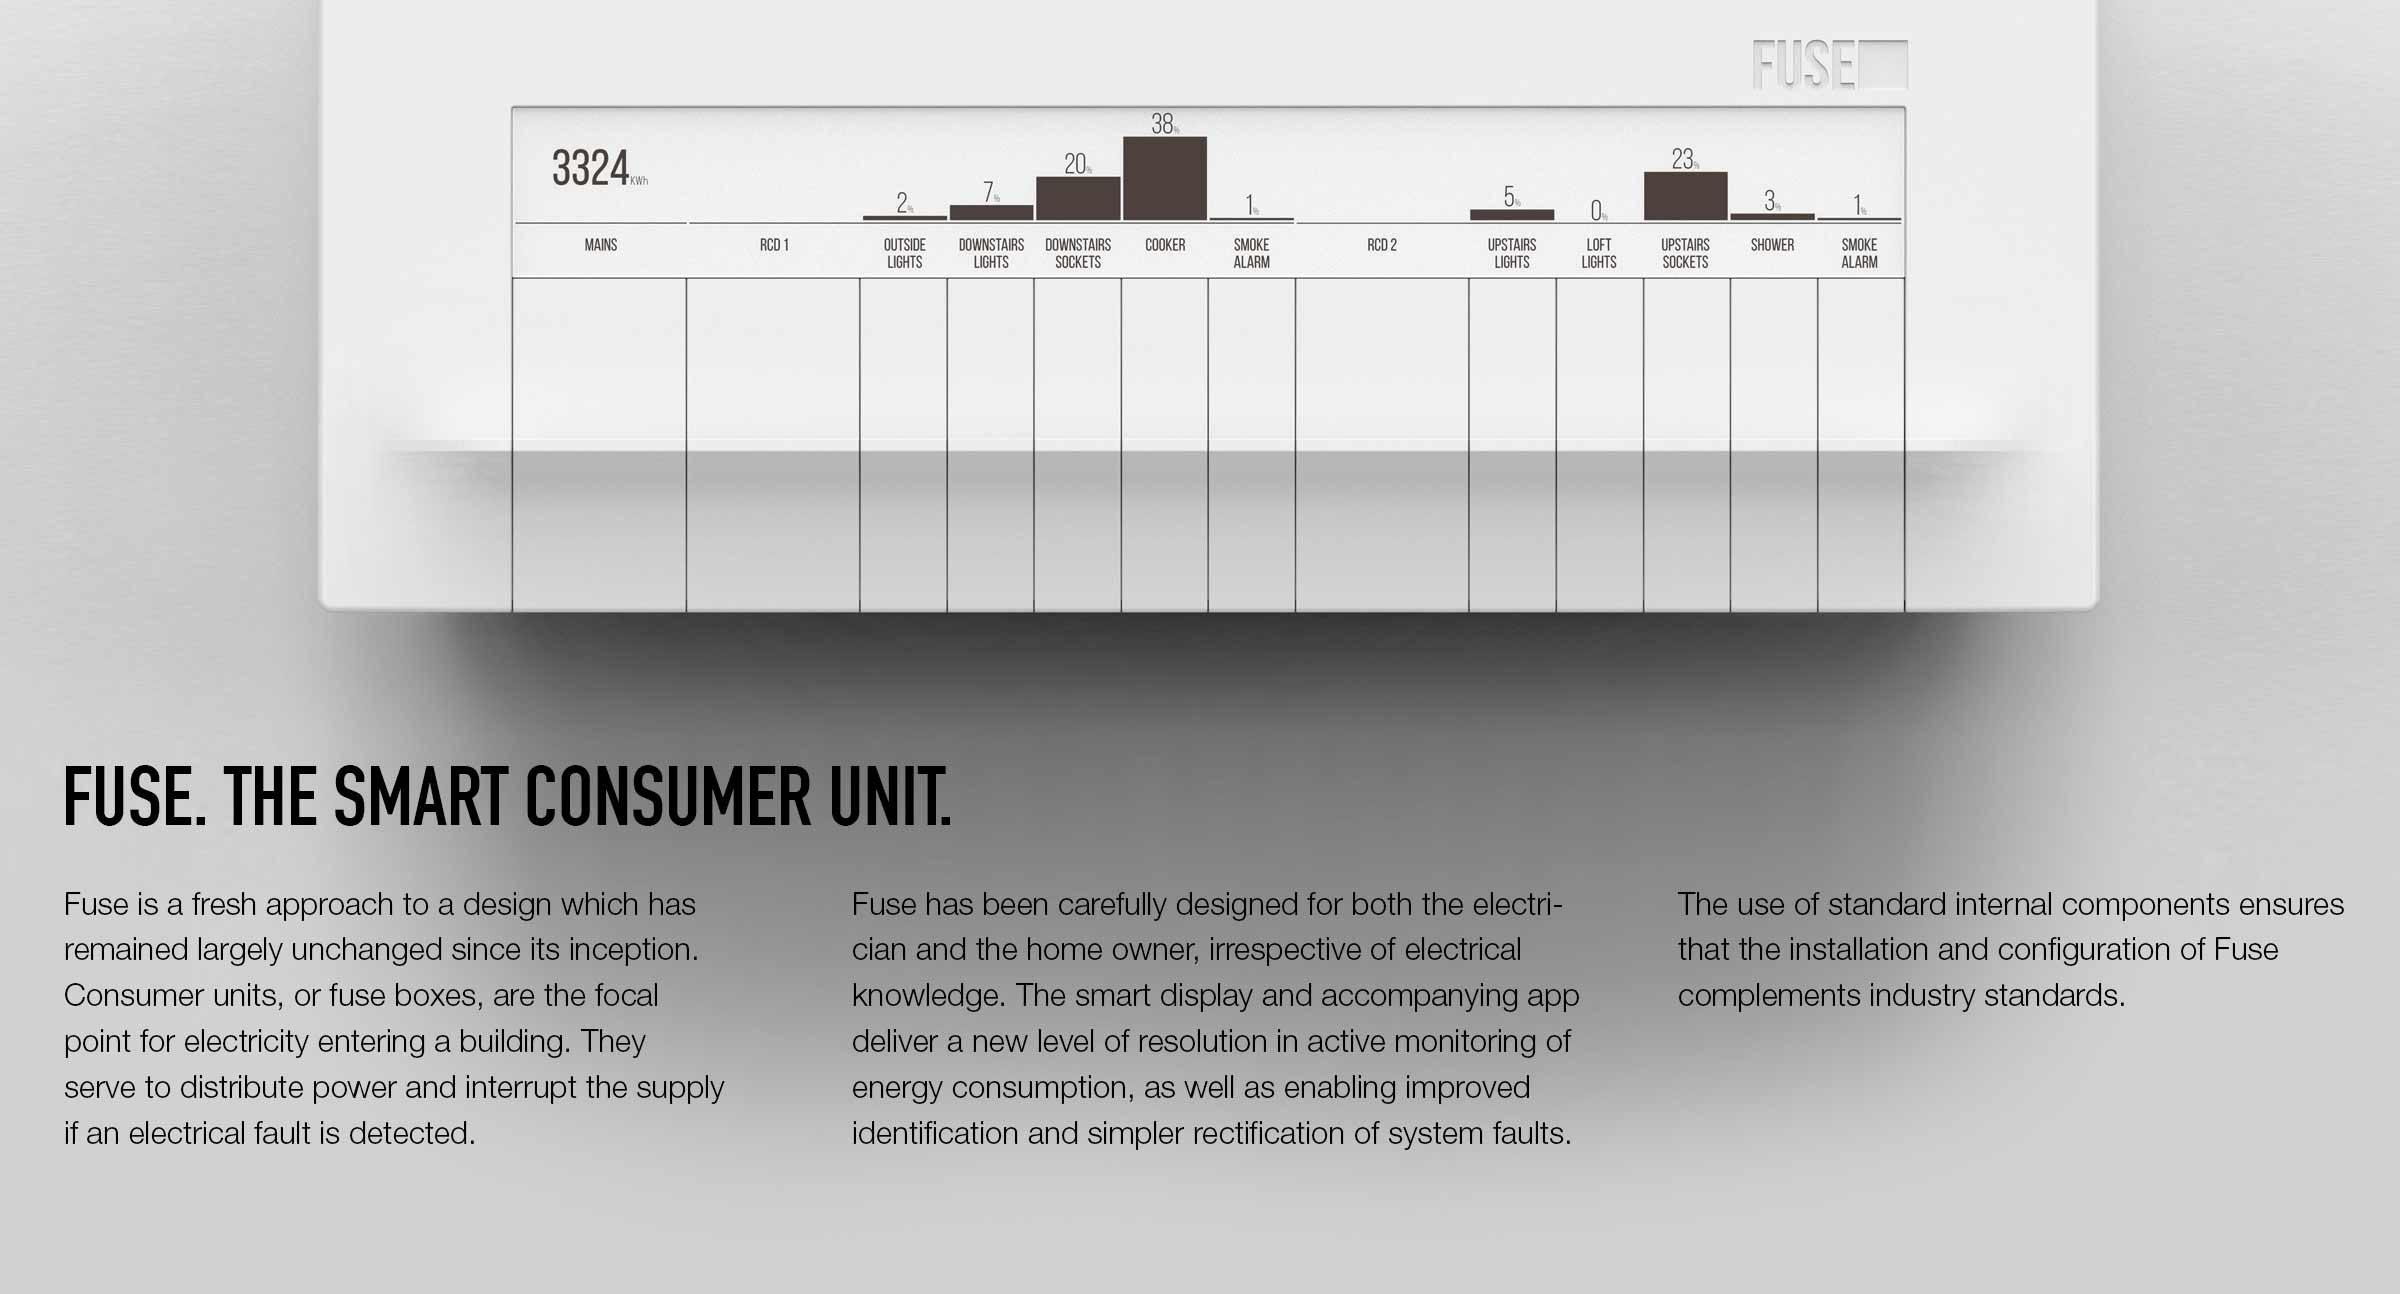 Fuse Box To Consumer Unit : Braunprize design for what matters p f fuse